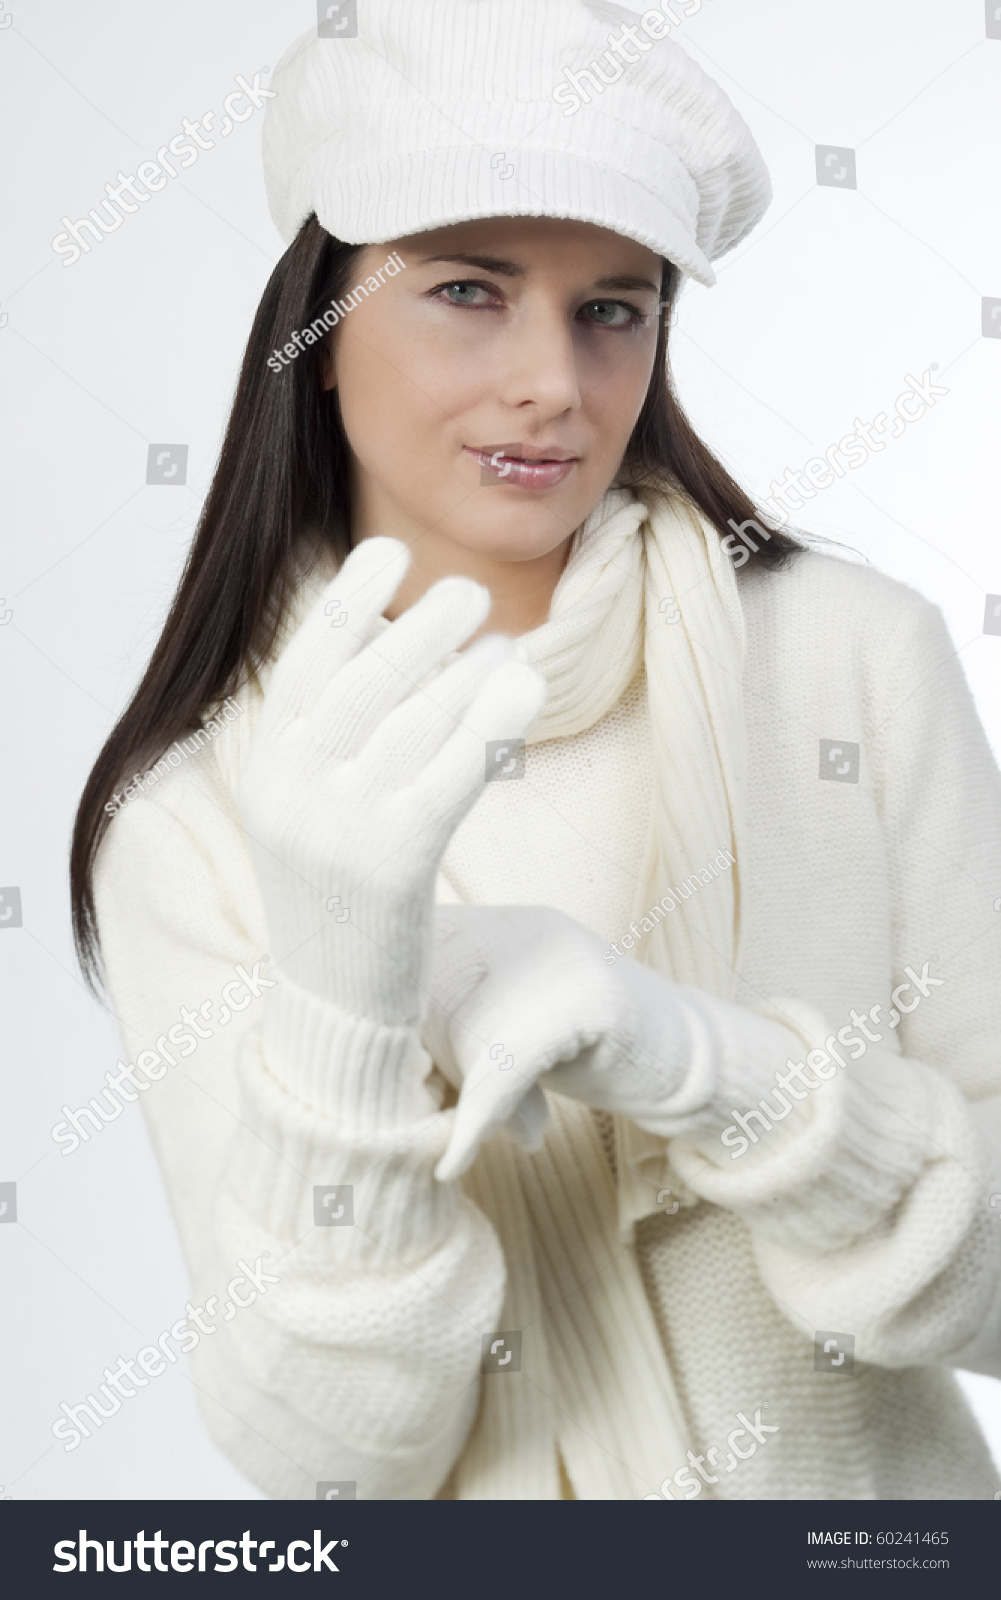 Young Woman Soft White Sweater Cap Stock Photo 60241465 - Shutterstock